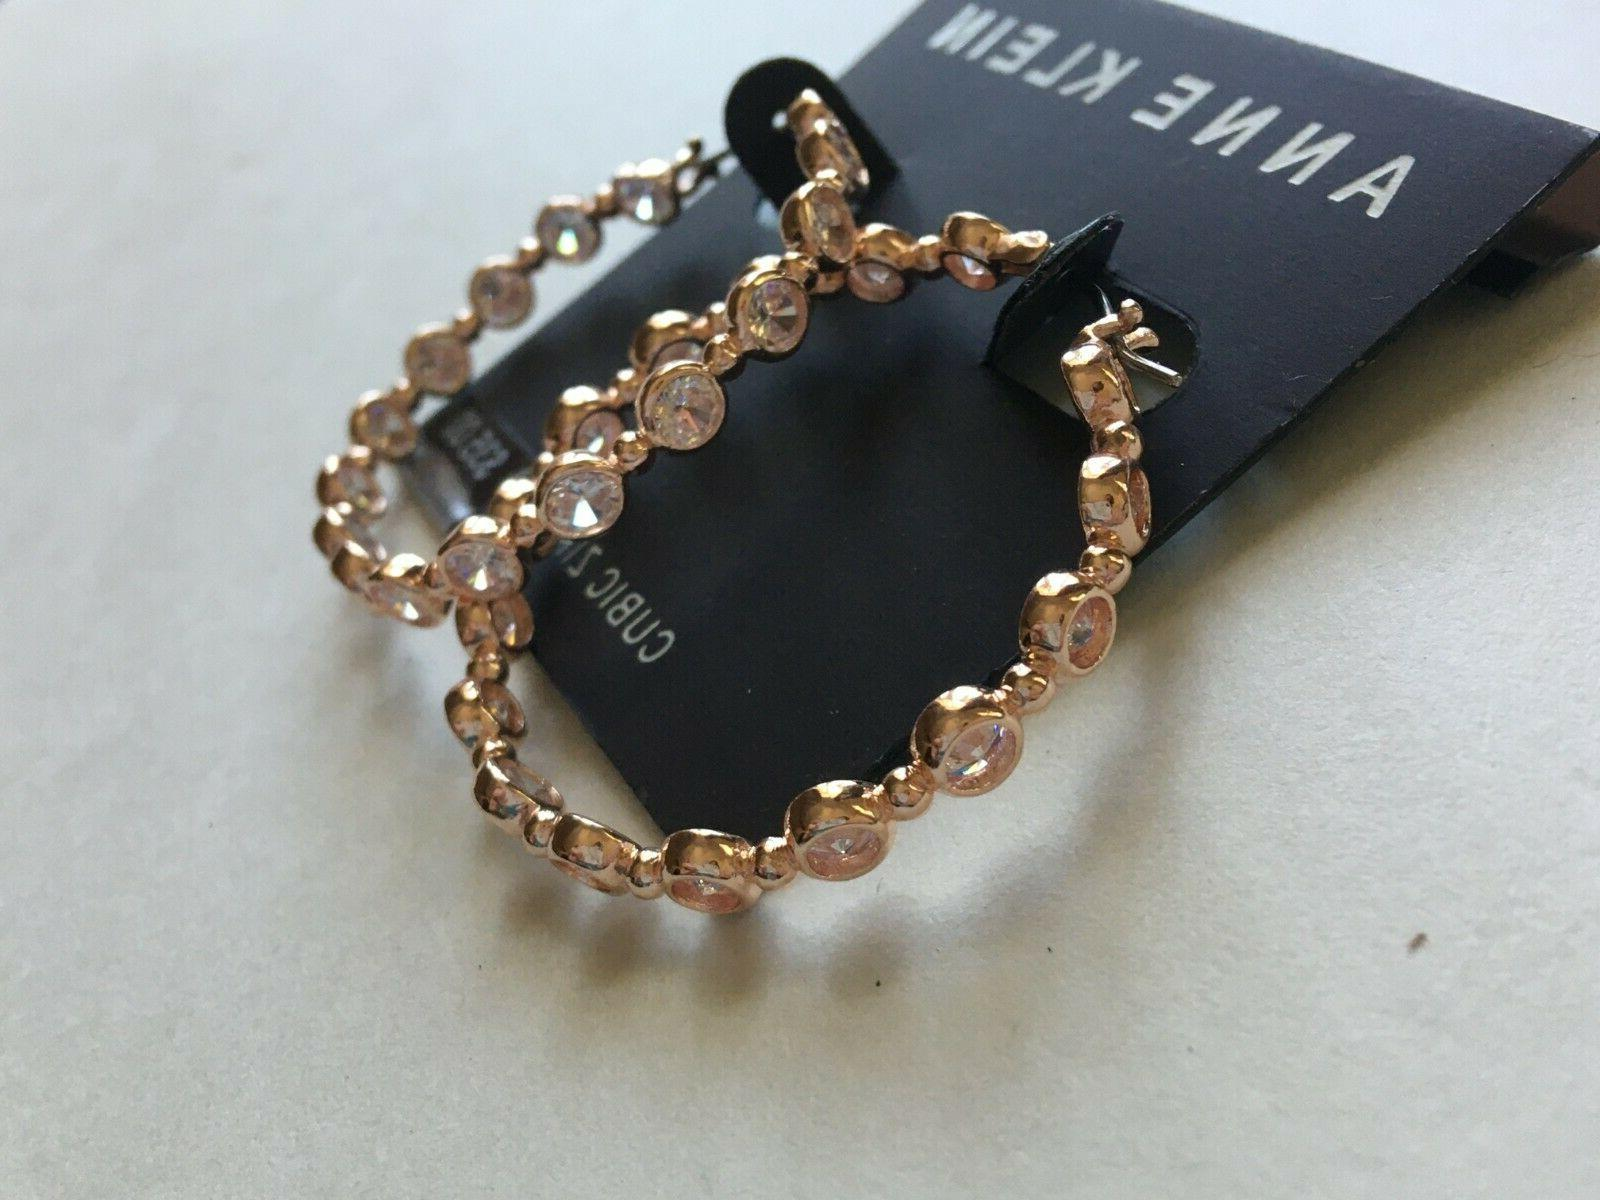 Anne Klein $35 Rose Gold Tone Over Stock